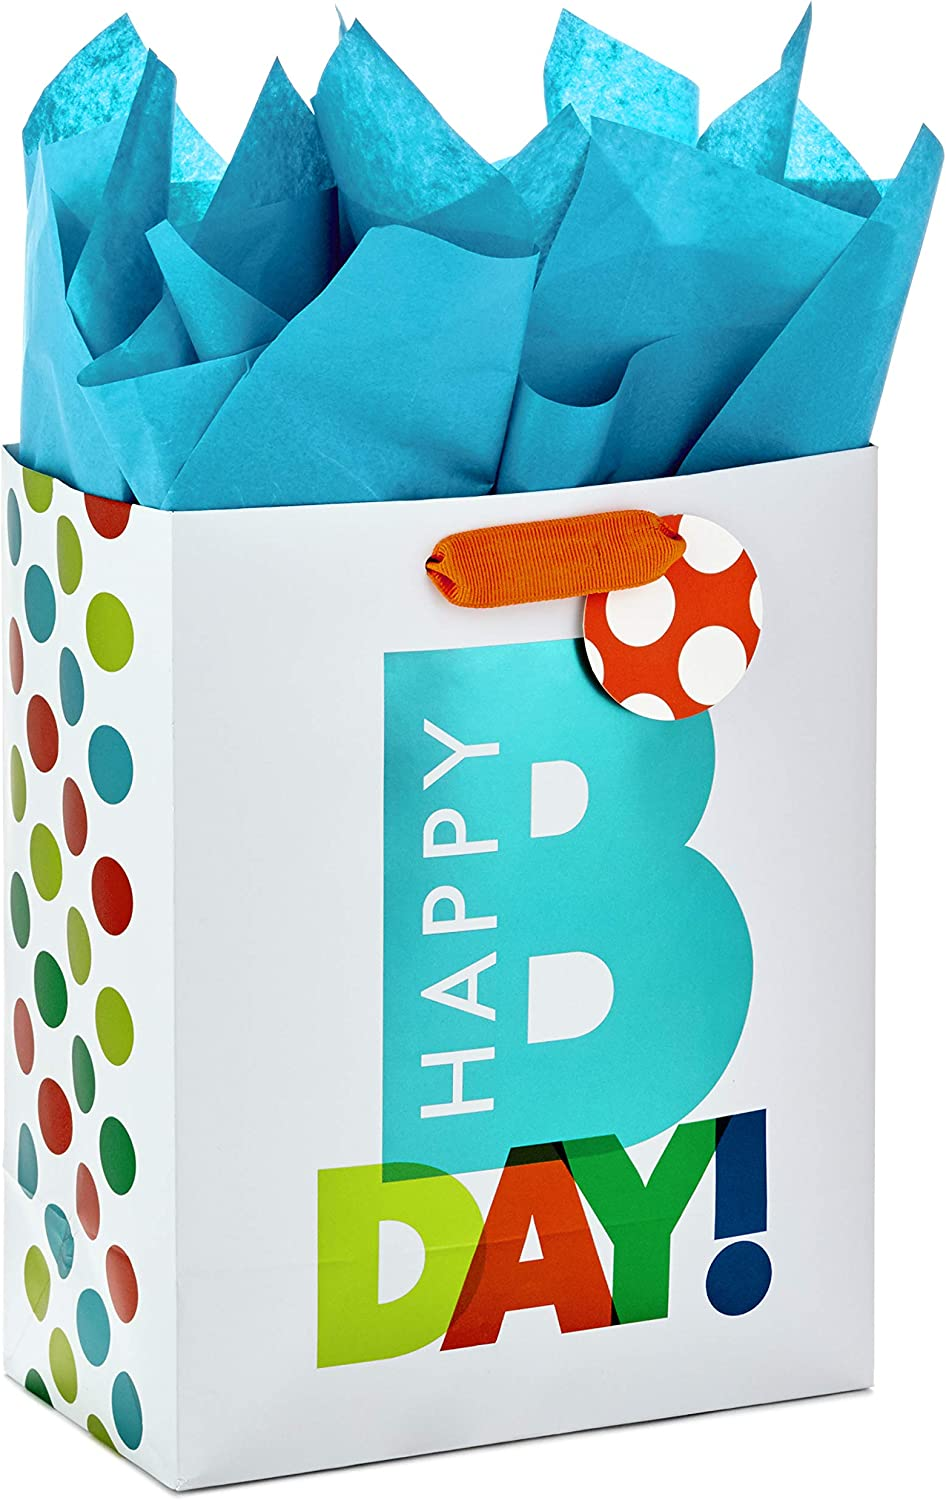 "Hallmark 9"" Medium Gift Bag with Tissue Paper for Birthdays (Happy Bday)"